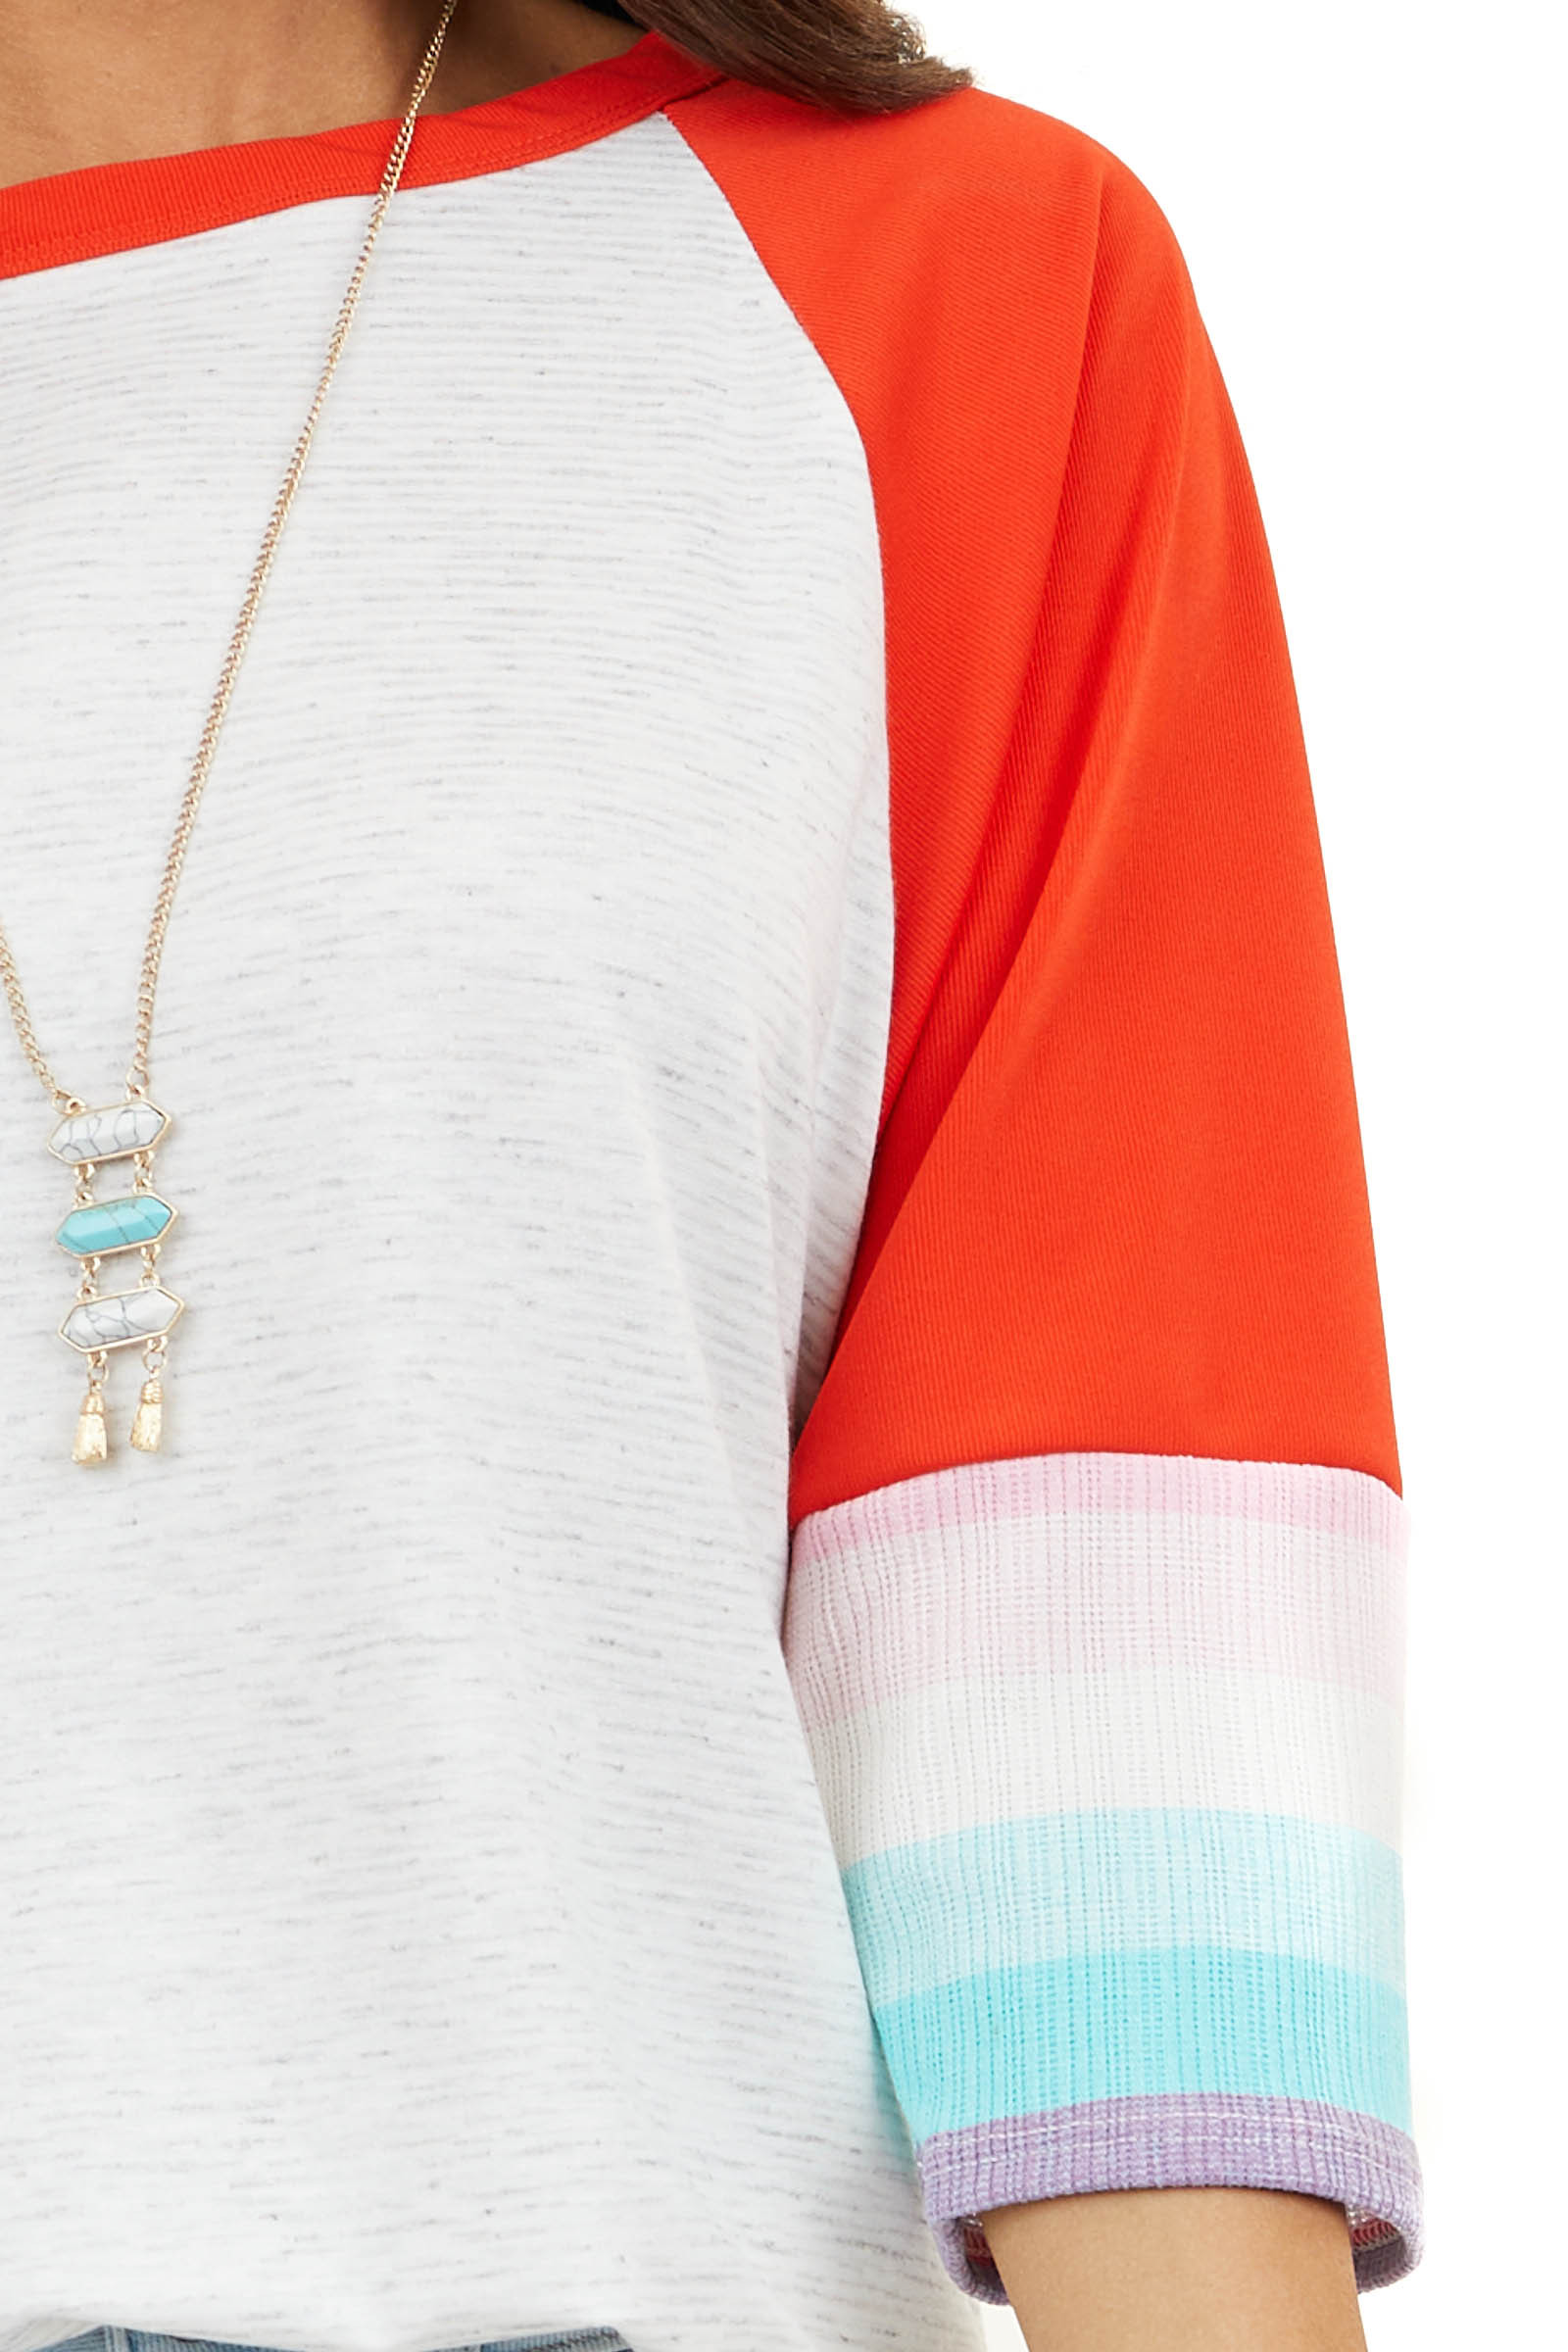 Ivory Stripe Print Tee with Red Contrasting Dolman Sleeves